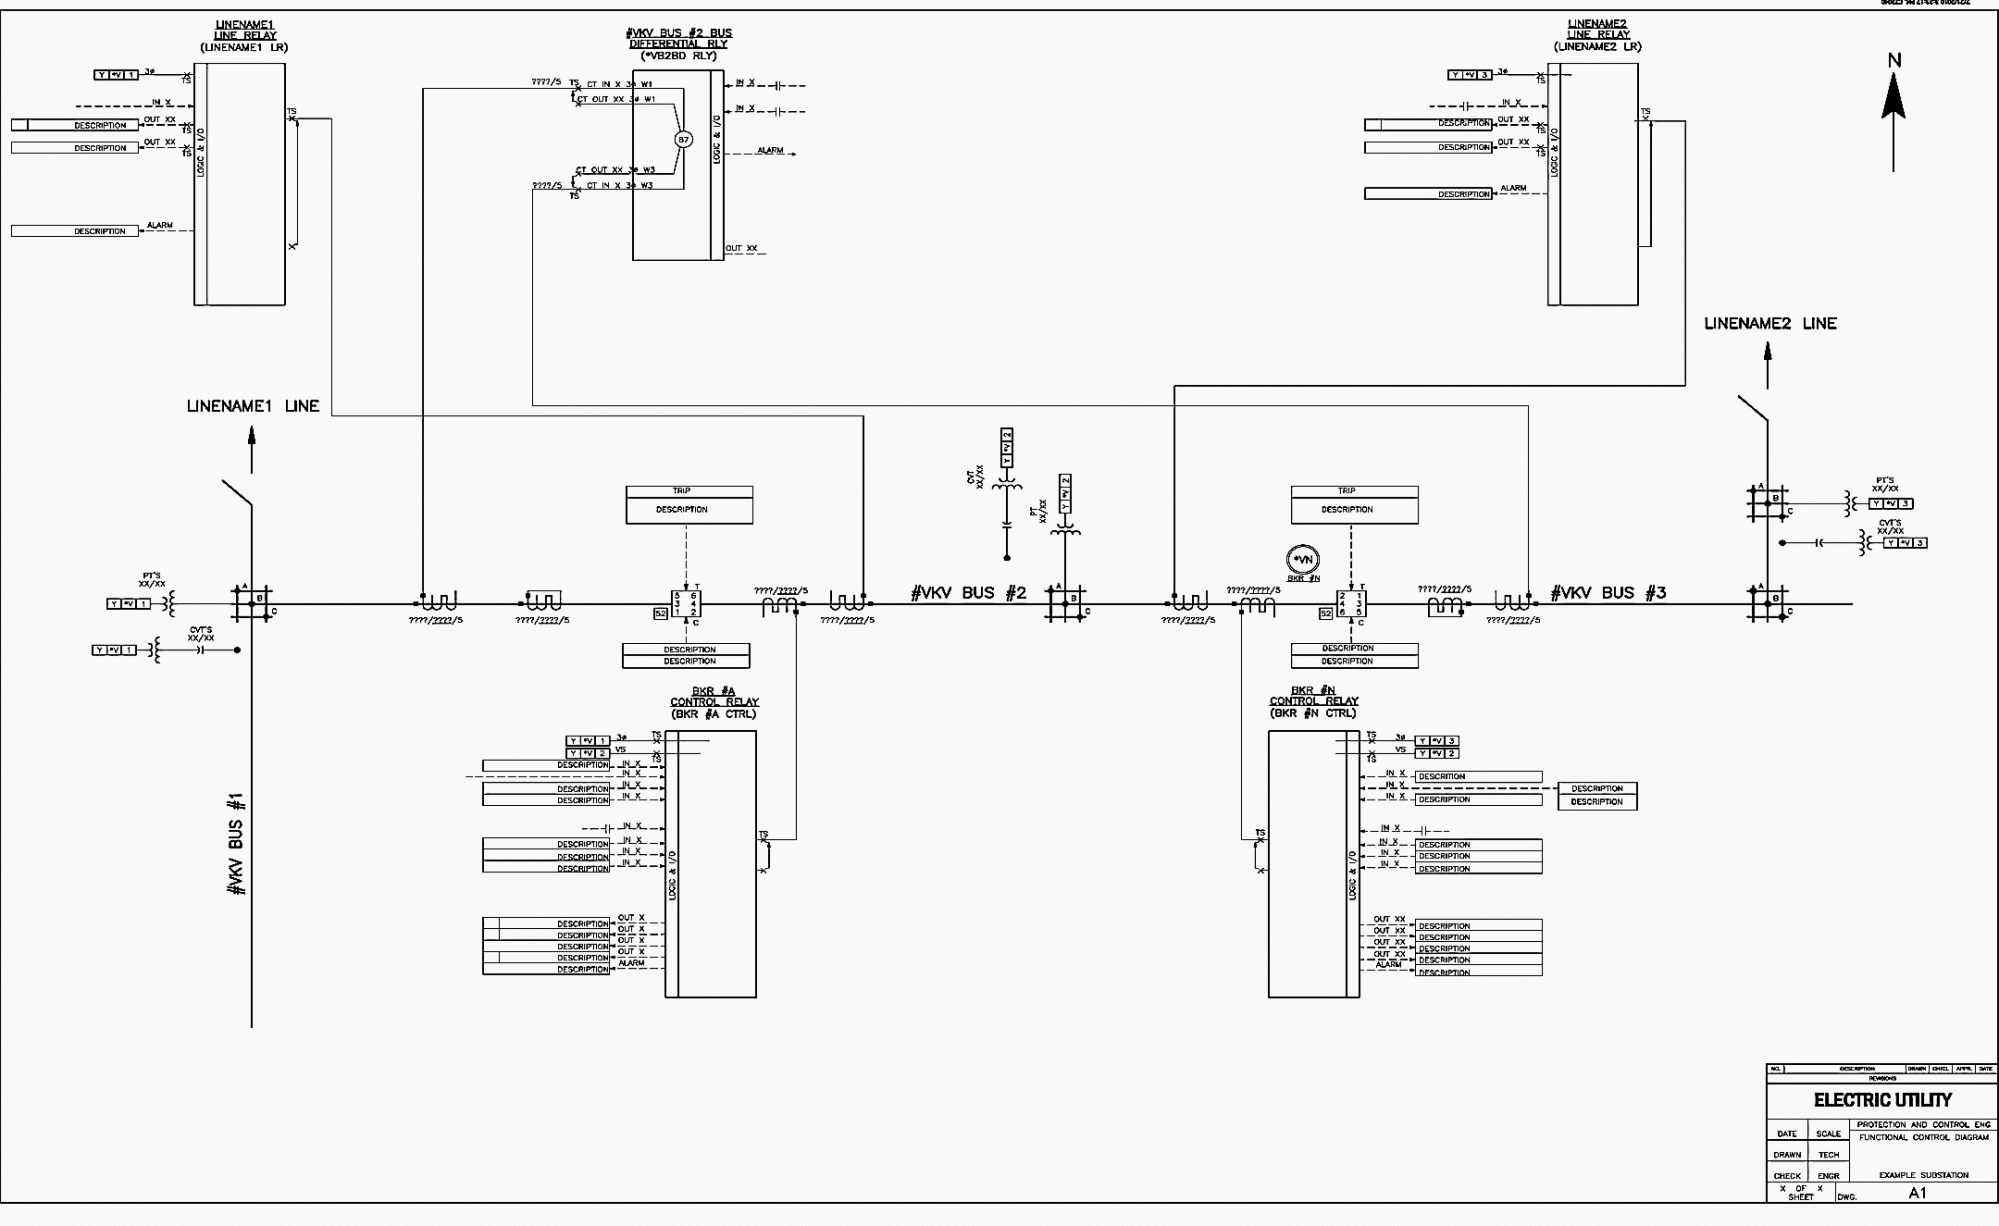 hight resolution of electrical single line diagram example wiring diagram go combination diagram of electrical single line and block diagram